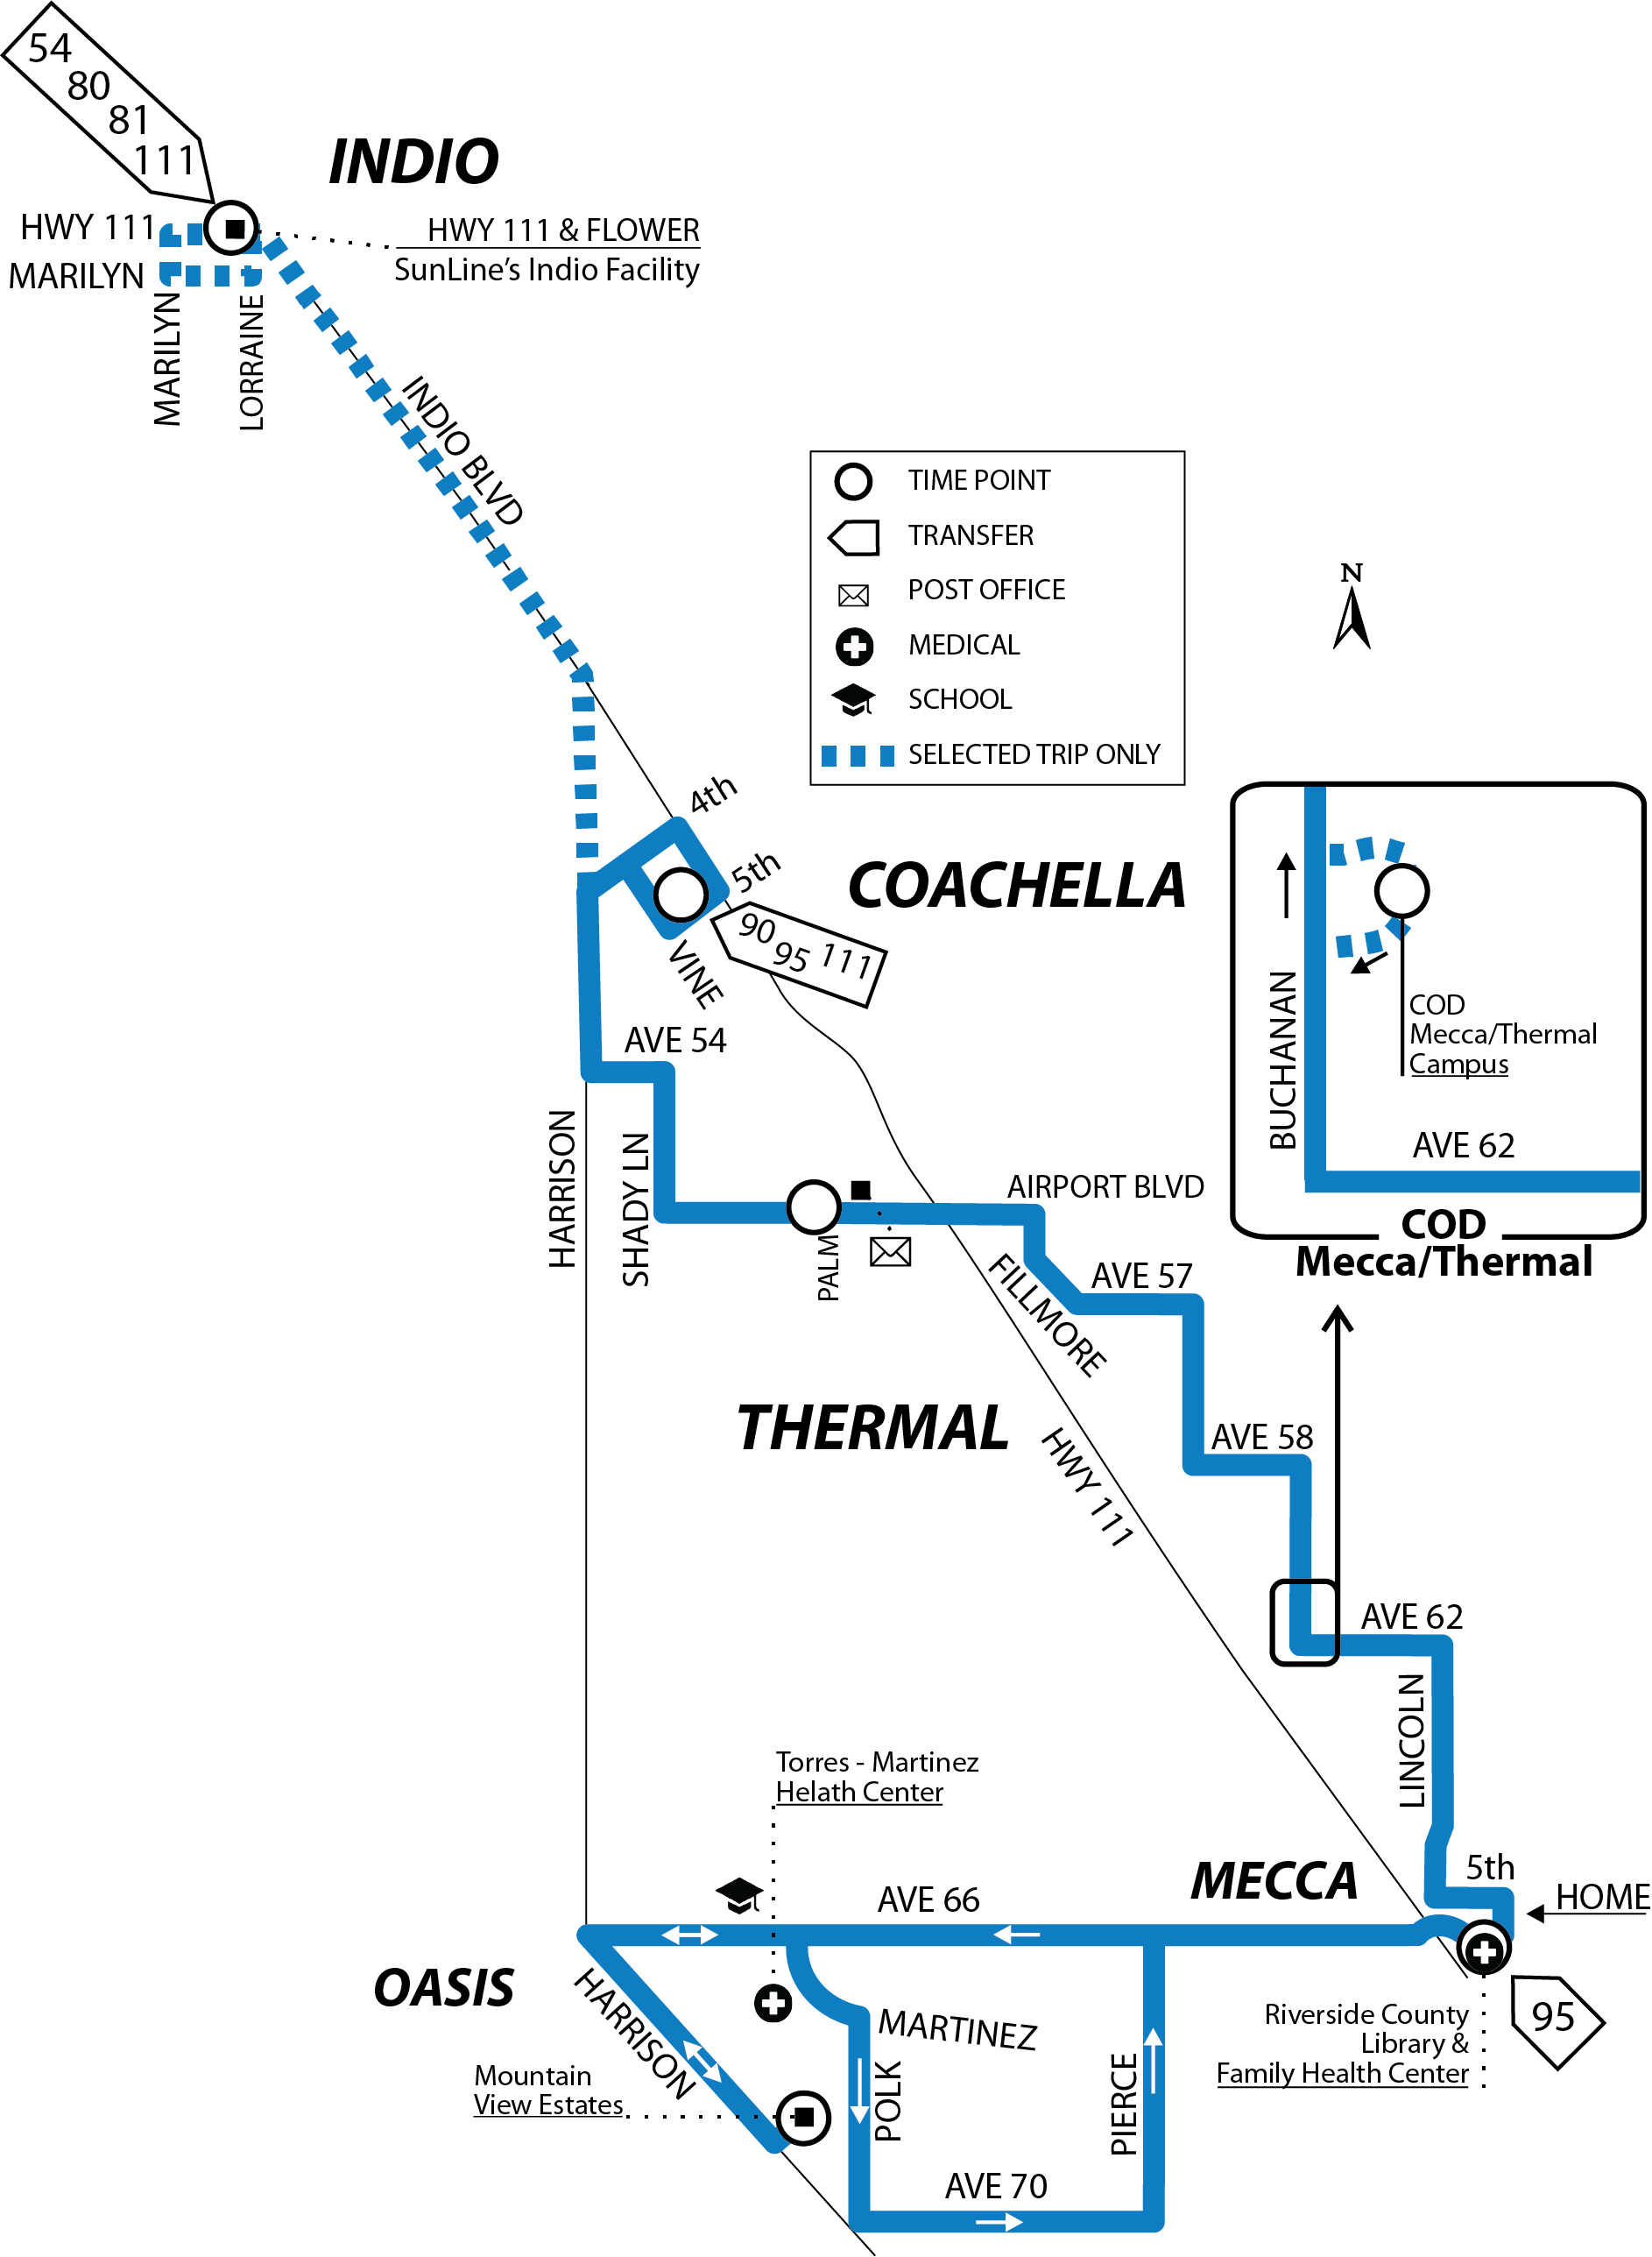 new line 91 map with select trips